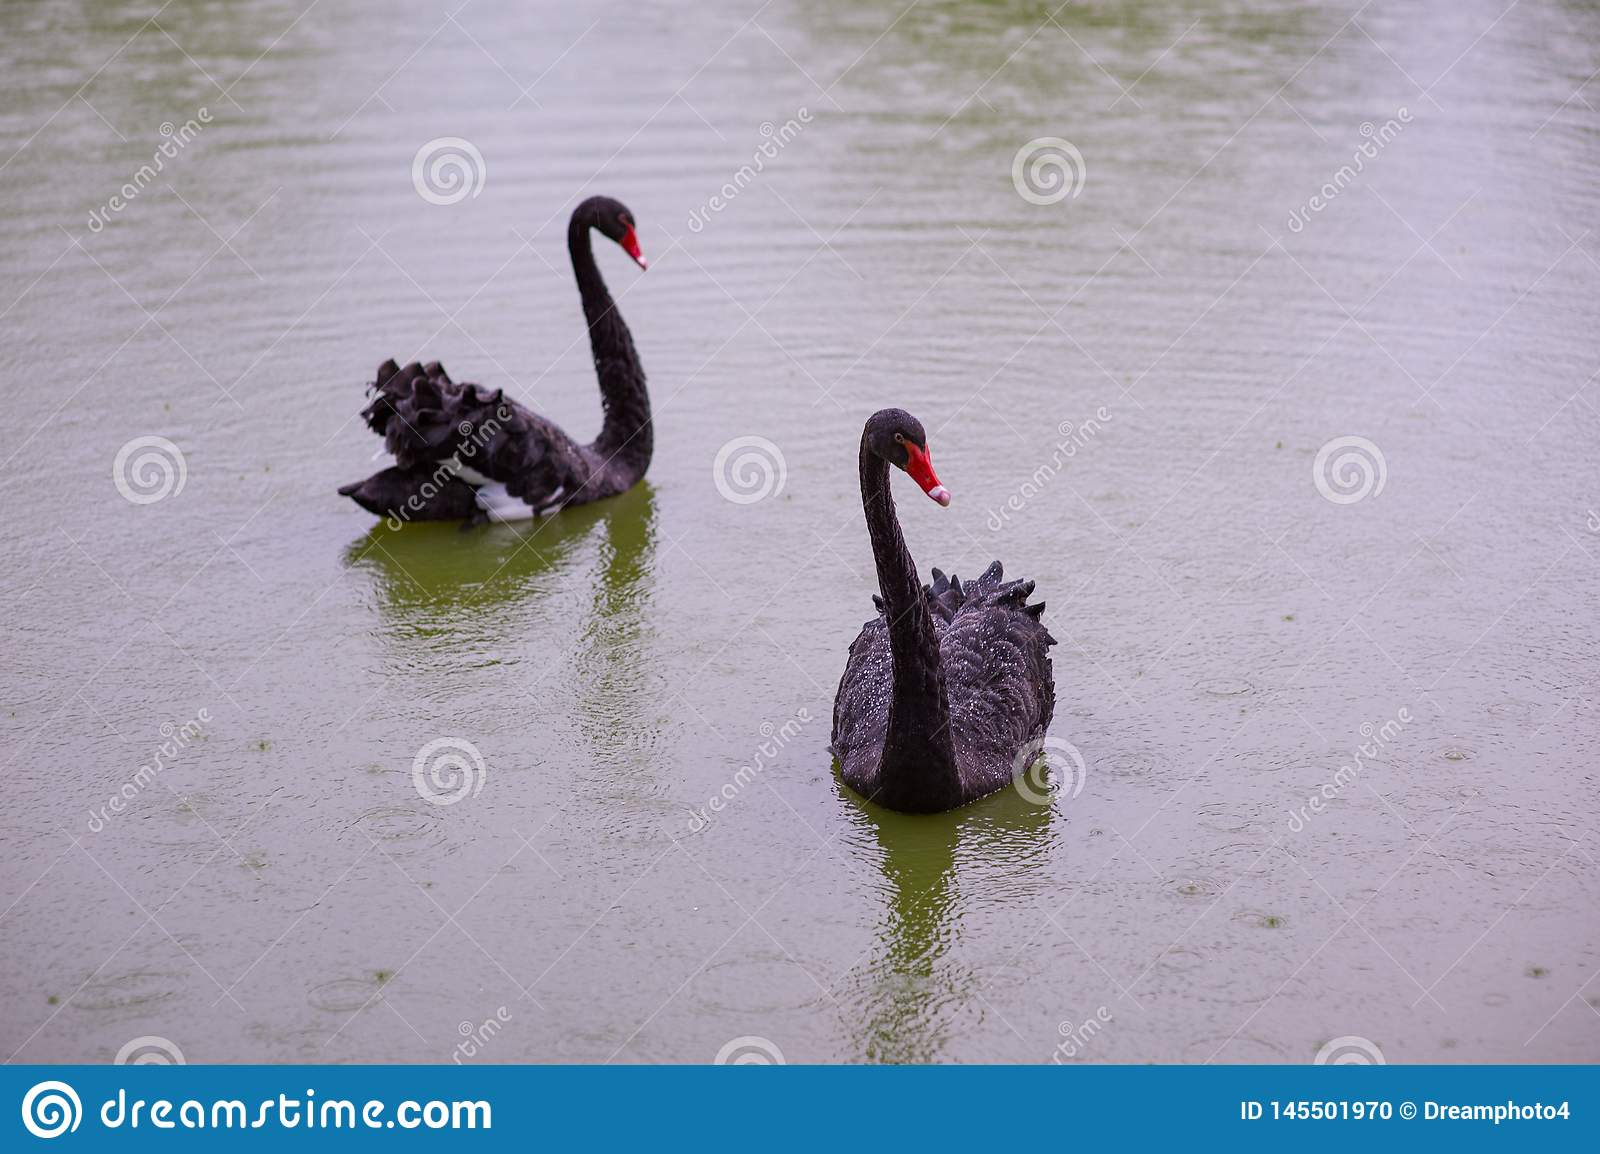 Two Black Swans in a pond